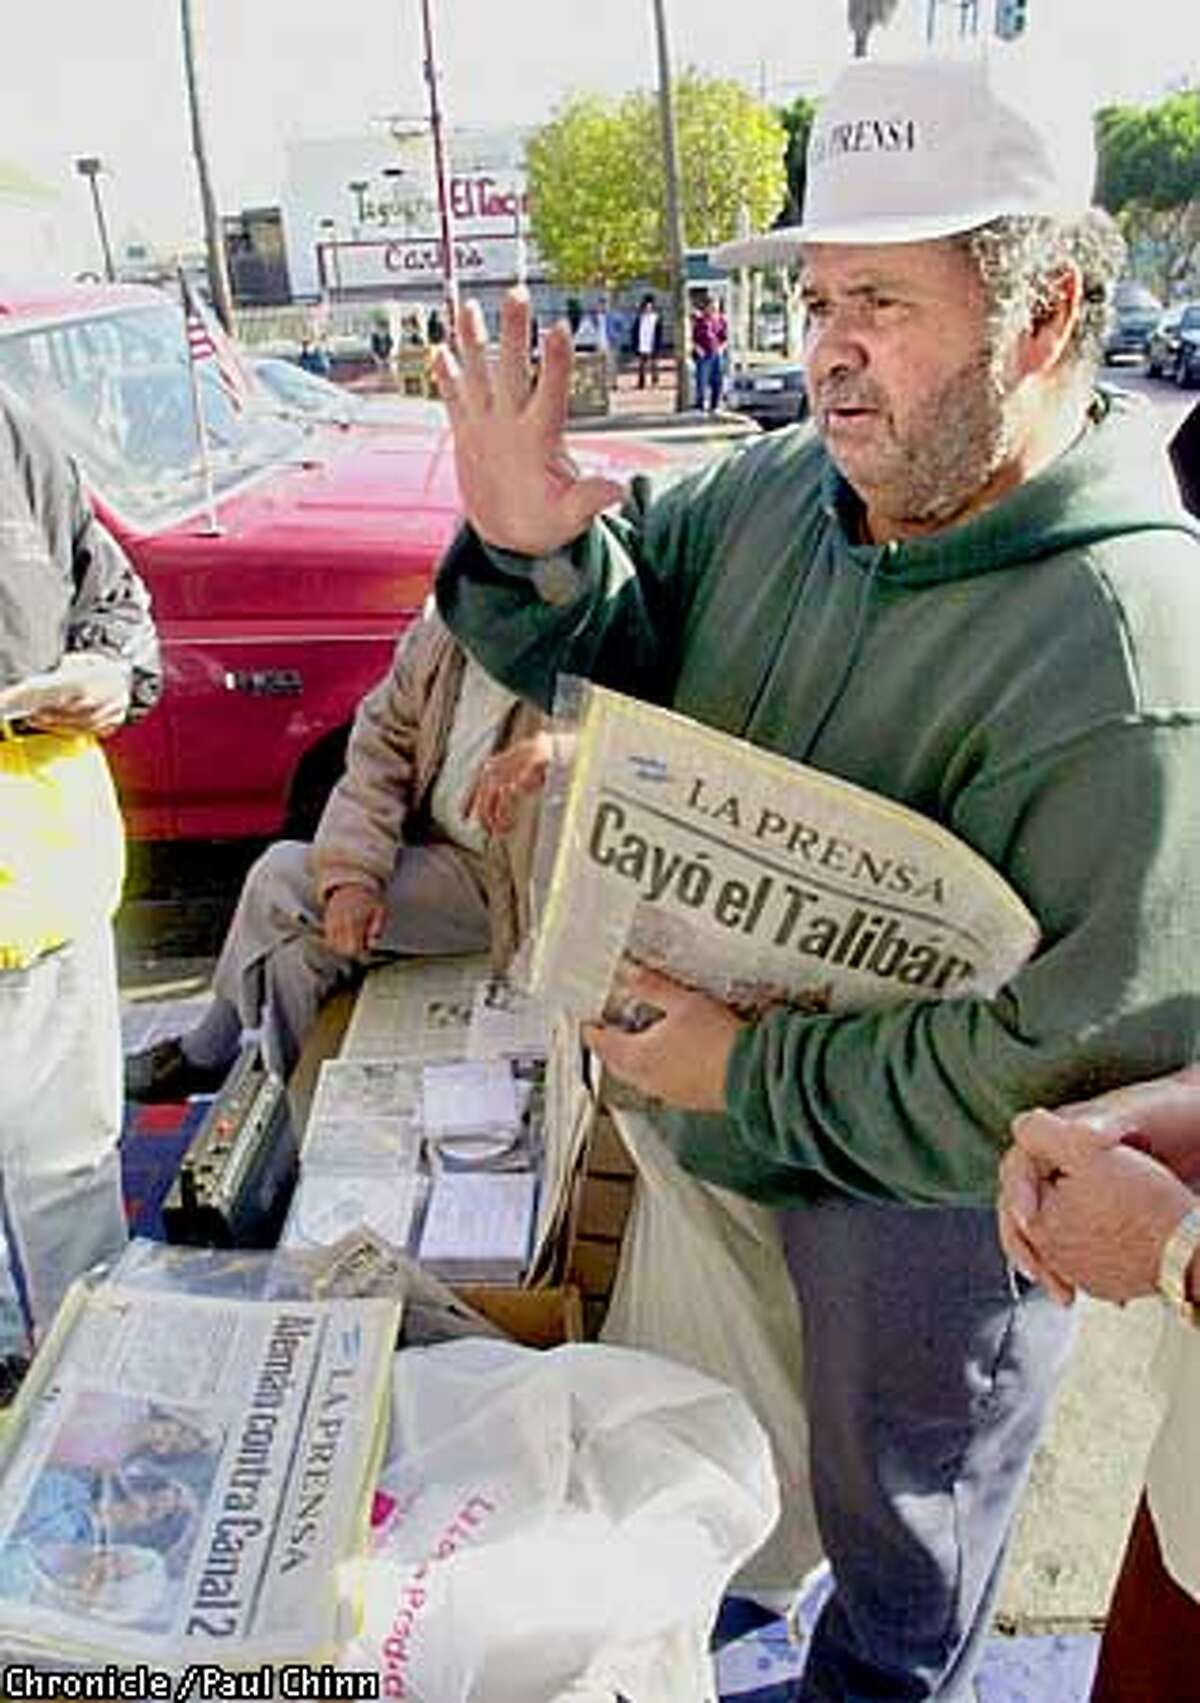 """Newspaper vendor Luis Membreno sells copies of the Nicaraguan newspaper """"La Prensa"""" at 24th and Mission Sts. Membreno and fellow Nicarguans were closely watching the presidential election in their homeland in which Enrique Bolanos defeated former president Daniel Ortega. PAUL CHINN/S.F. CHRONICLE"""